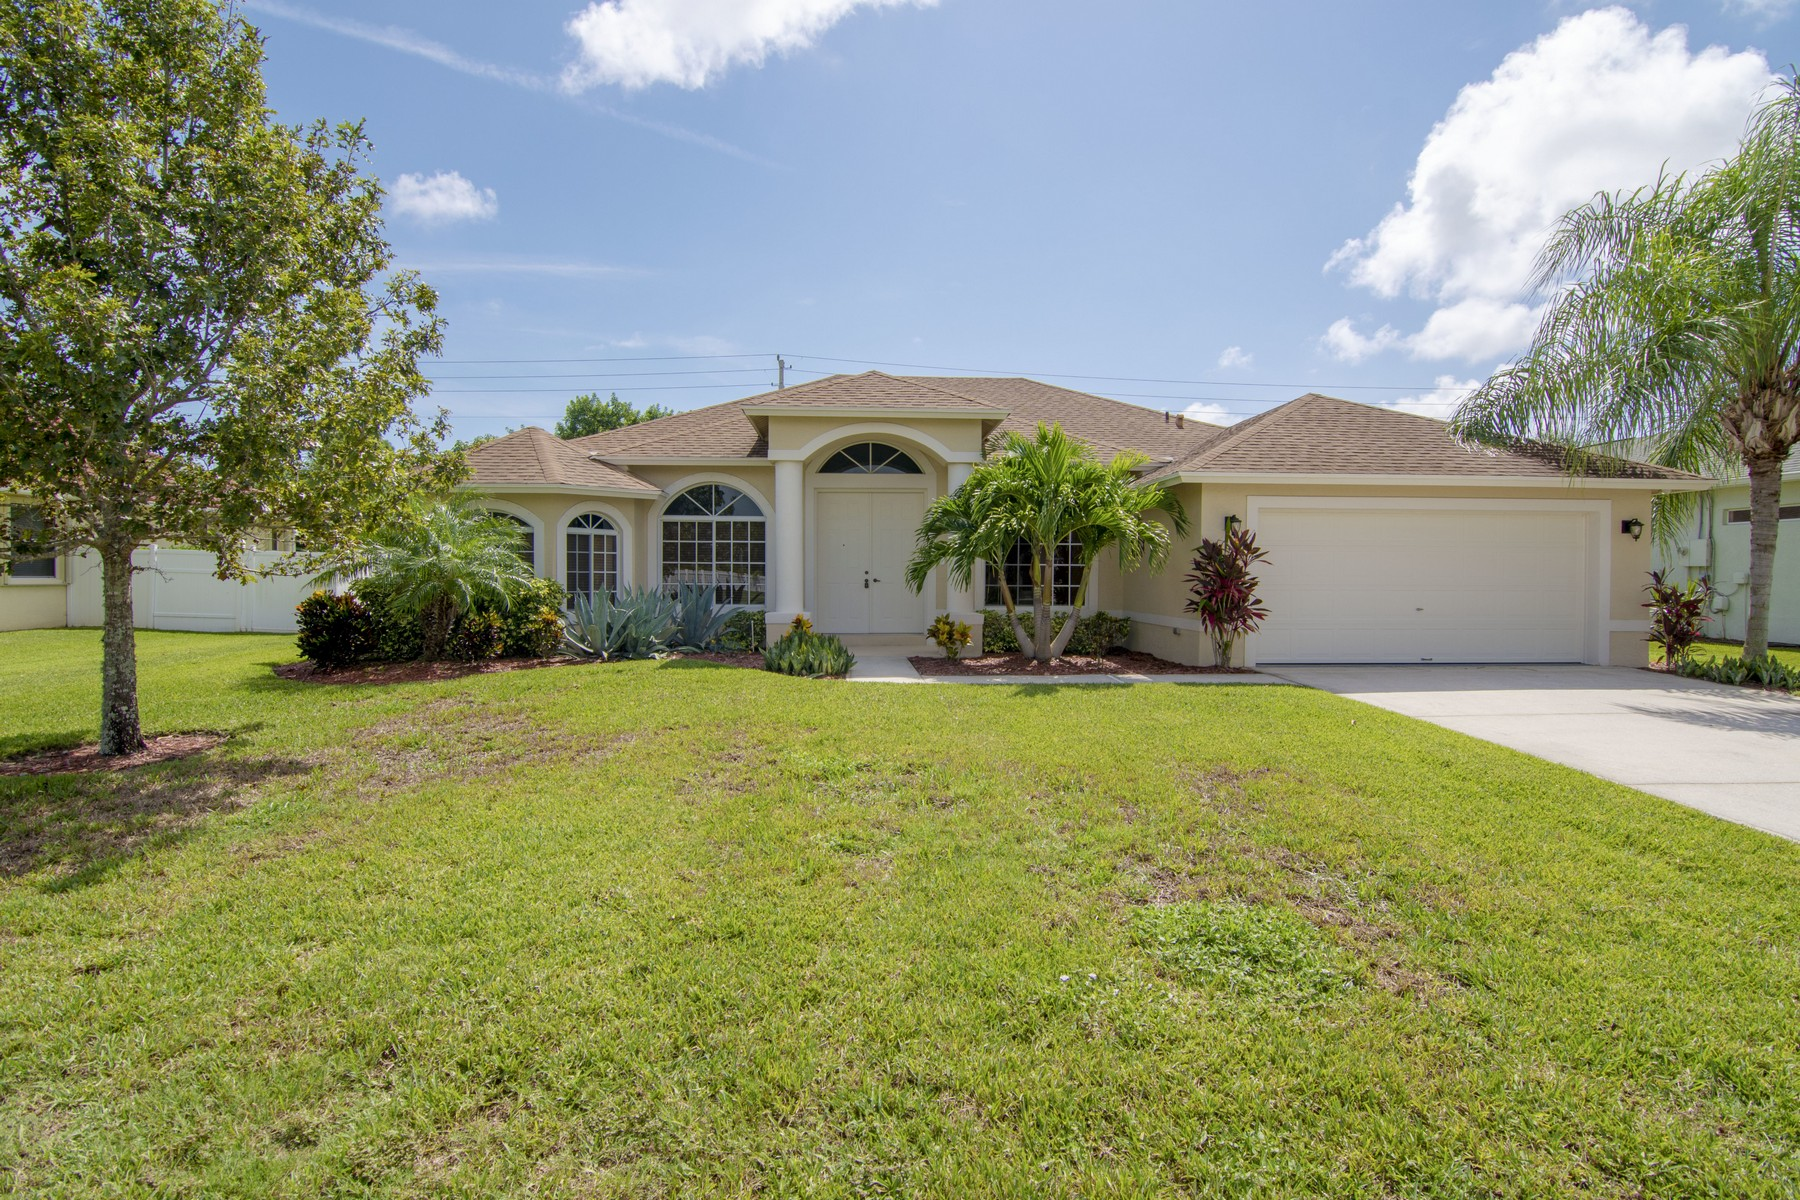 Single Family Home for Sale at Beautifully Updated Home in the Preserve 330 21st Court SW Vero Beach, Florida 32962 United States